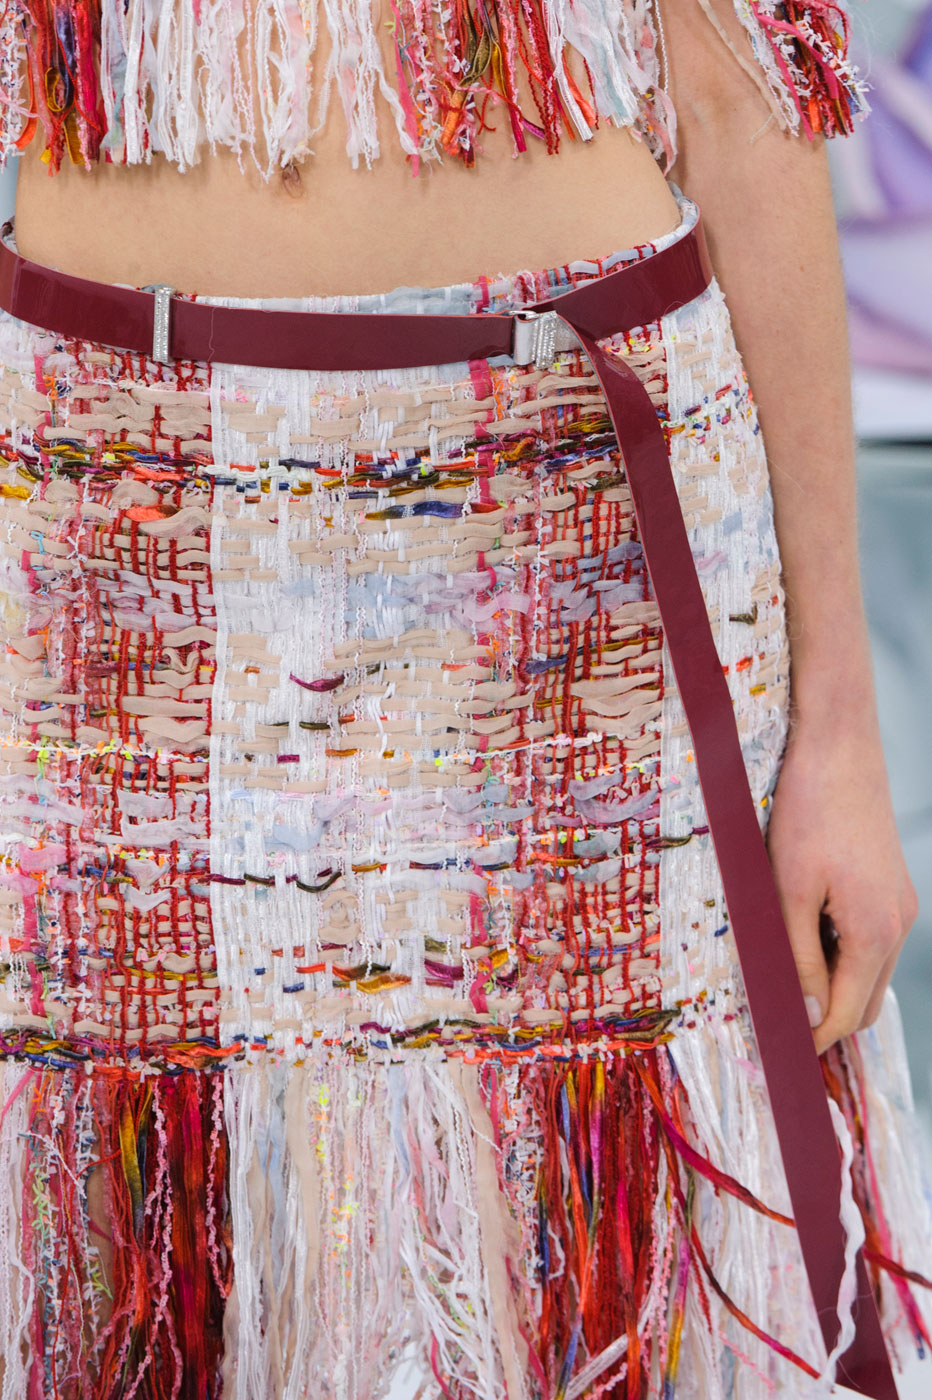 Chanel-fashion-runway-show-close-ups-haute-couture-paris-spring-summer-2015-the-impression-056